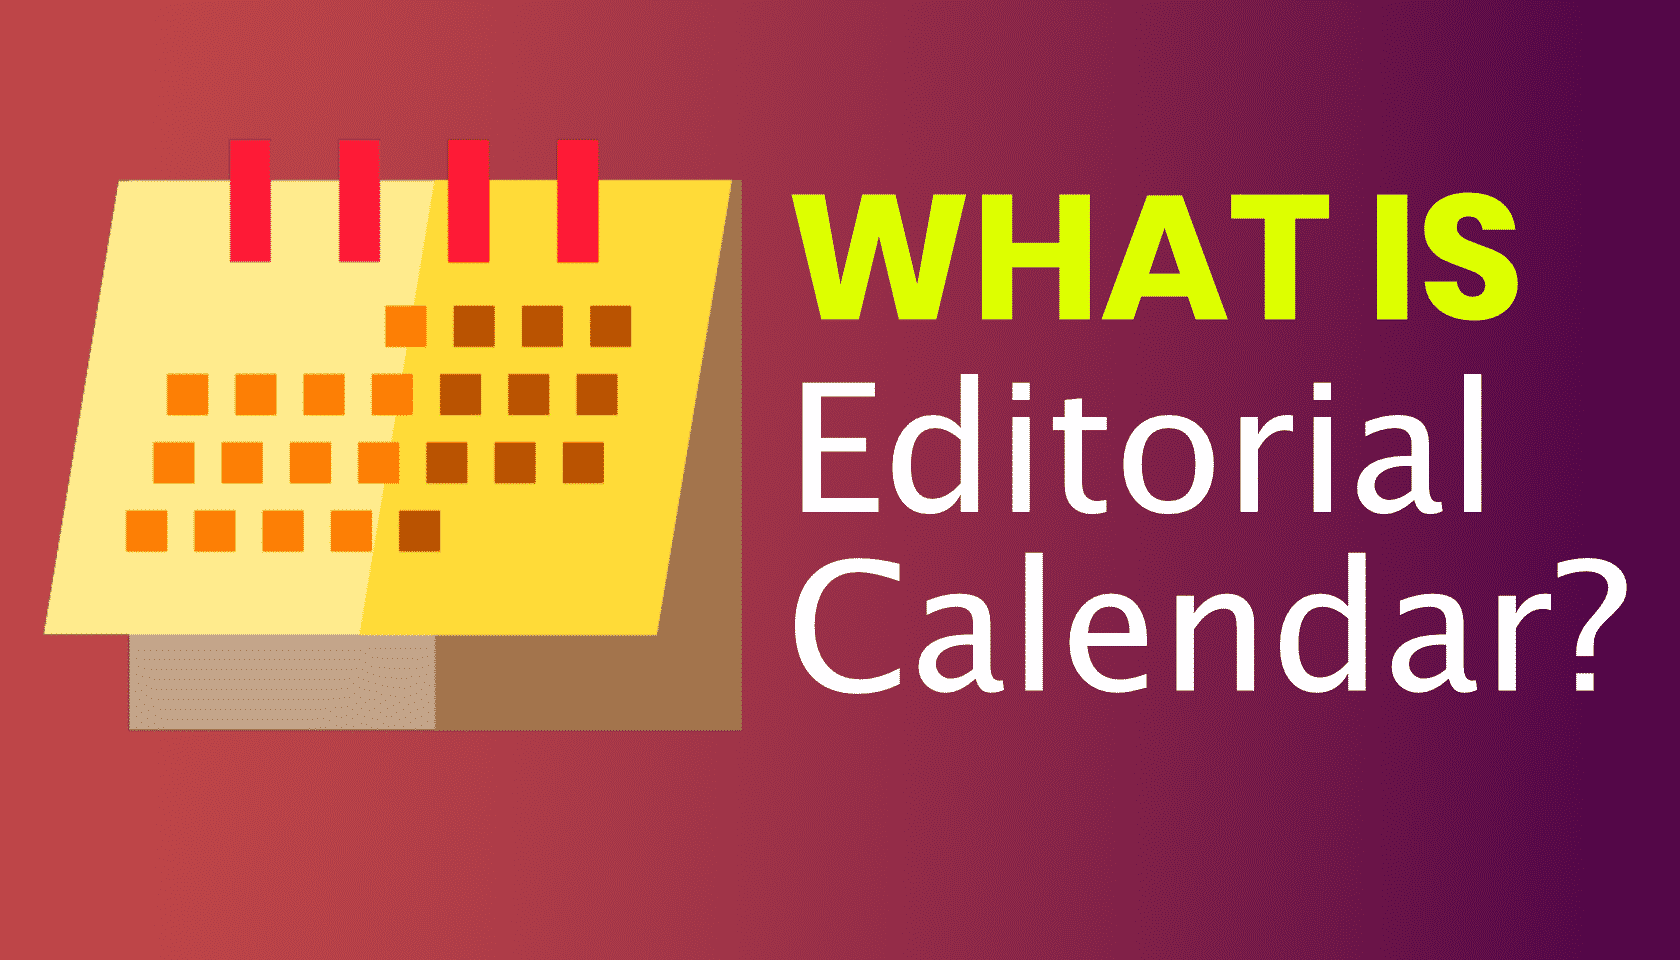 What is: Editorial Calendar